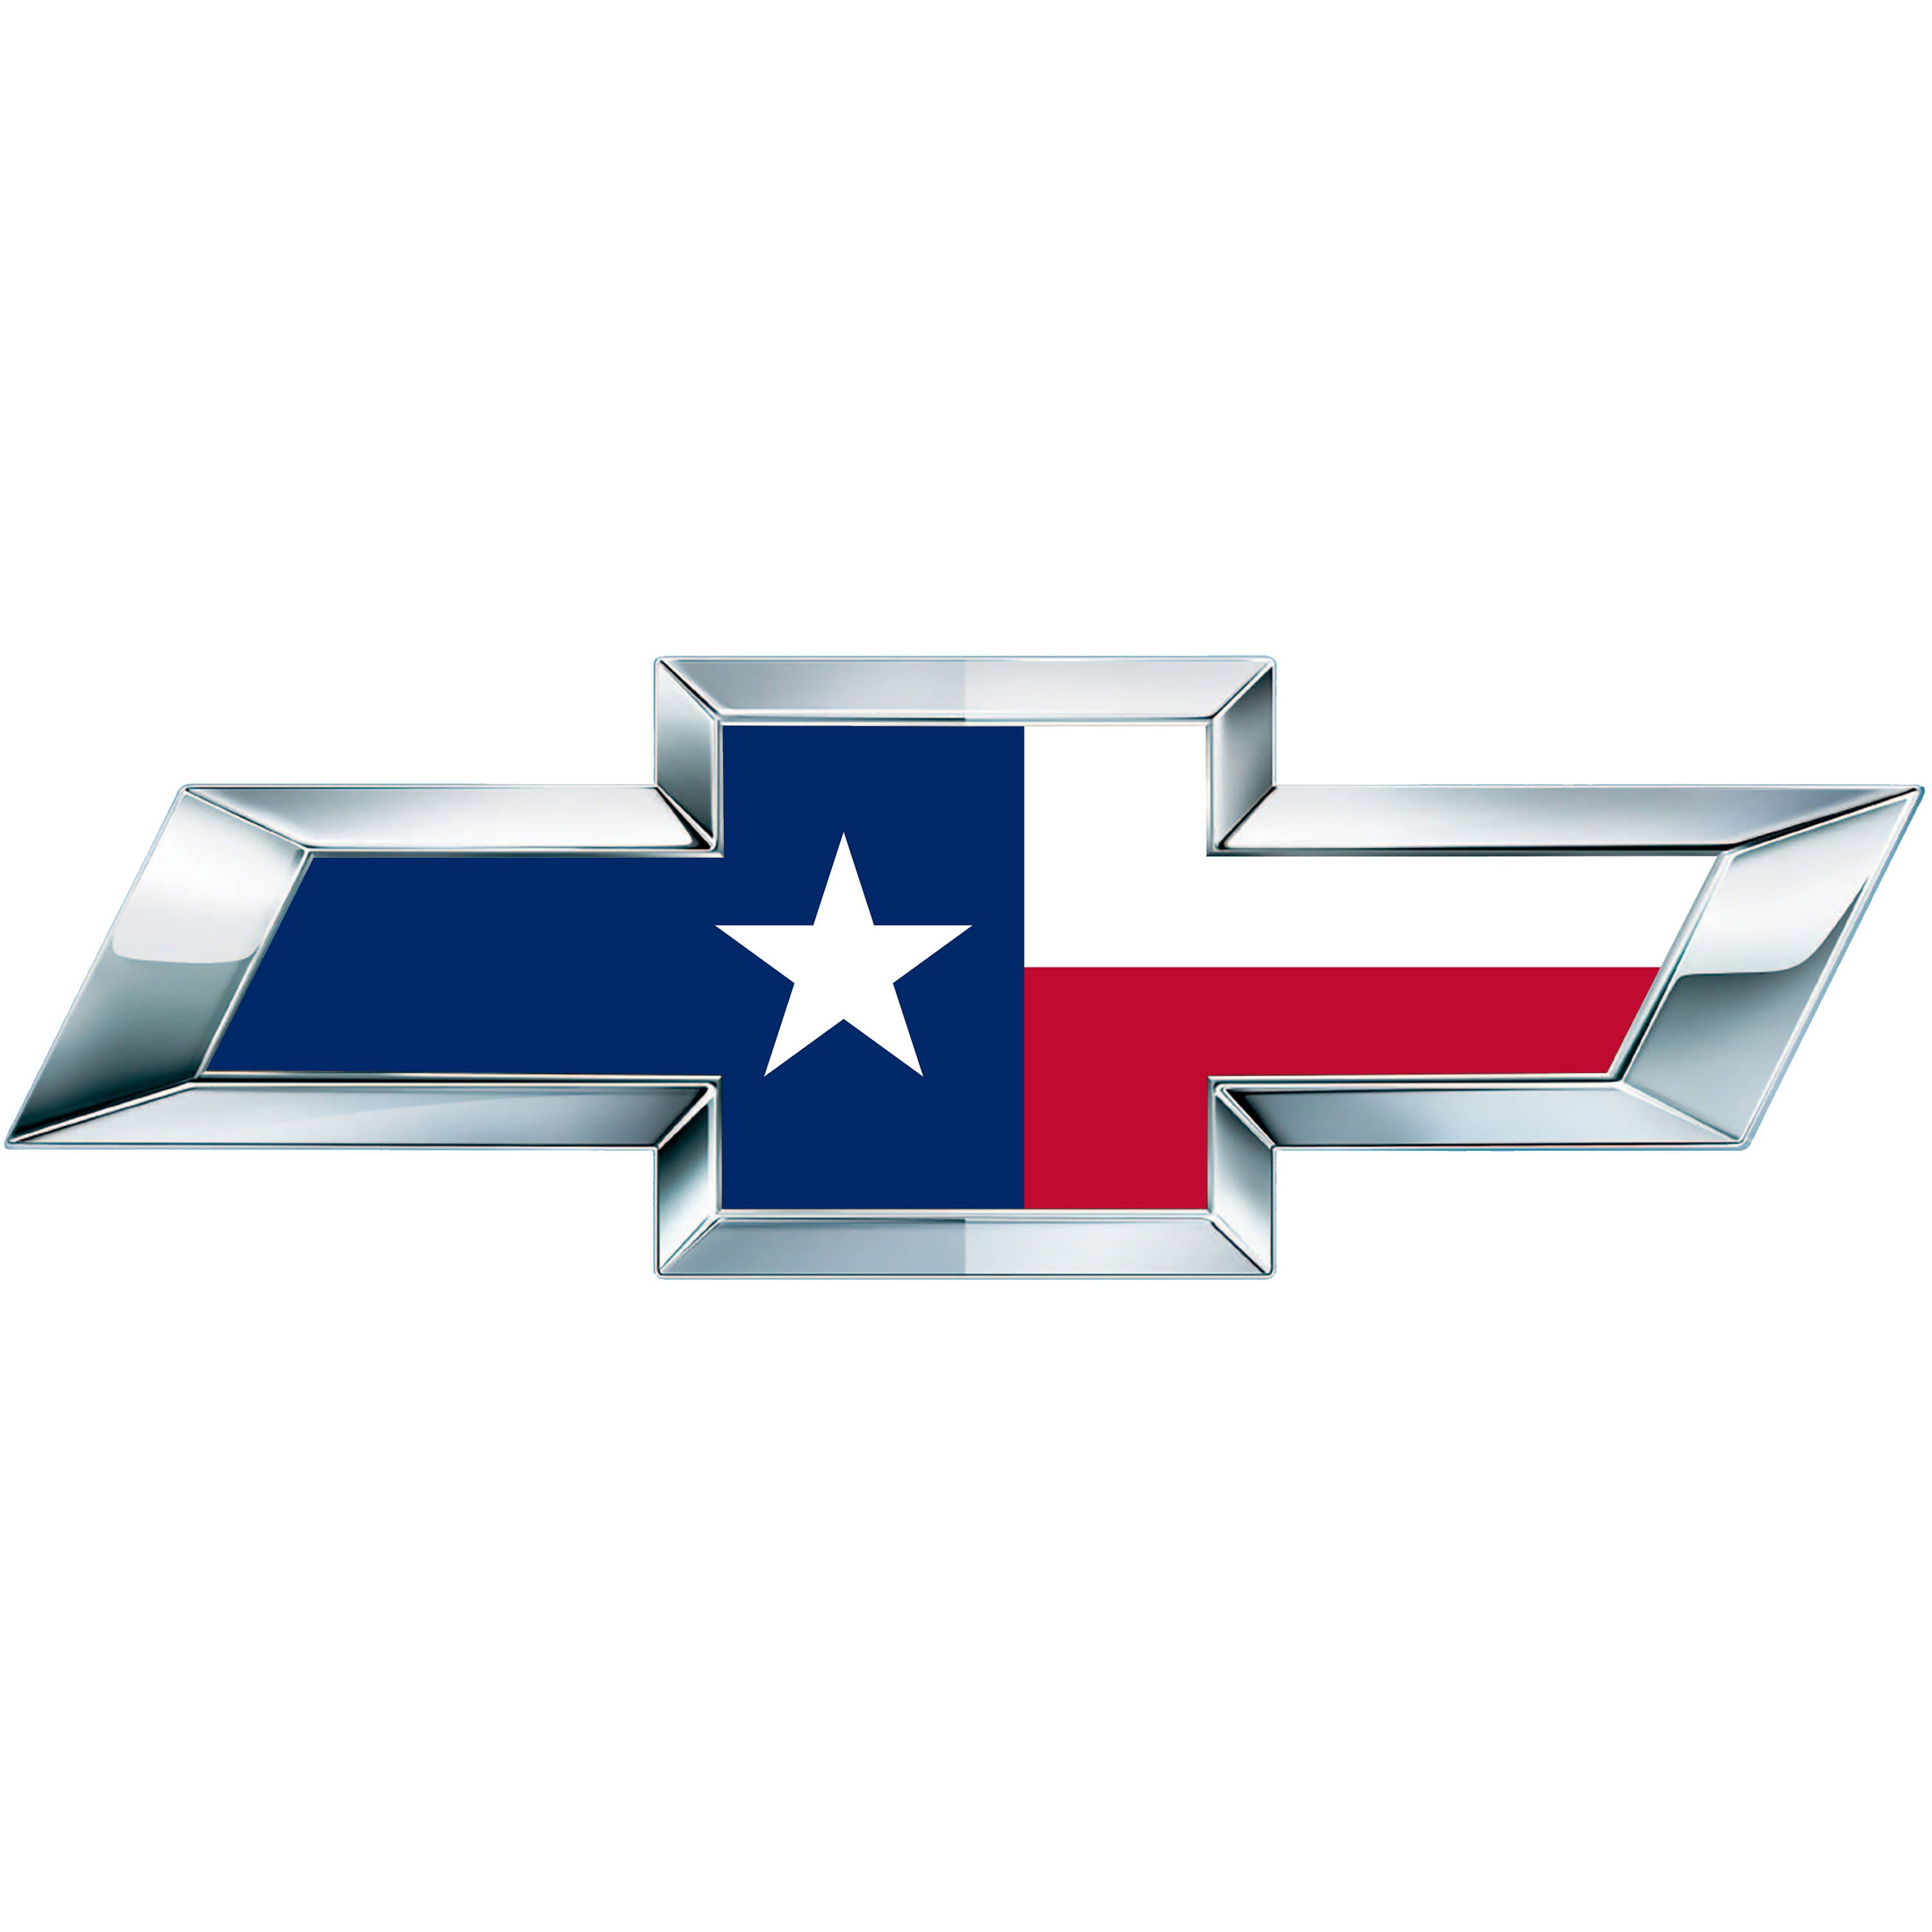 2 Texas Flag Vinyl Sheets for Chevy / Chevrolet Emblem Bowtie Overlay Decal  (Not Pre-cut)